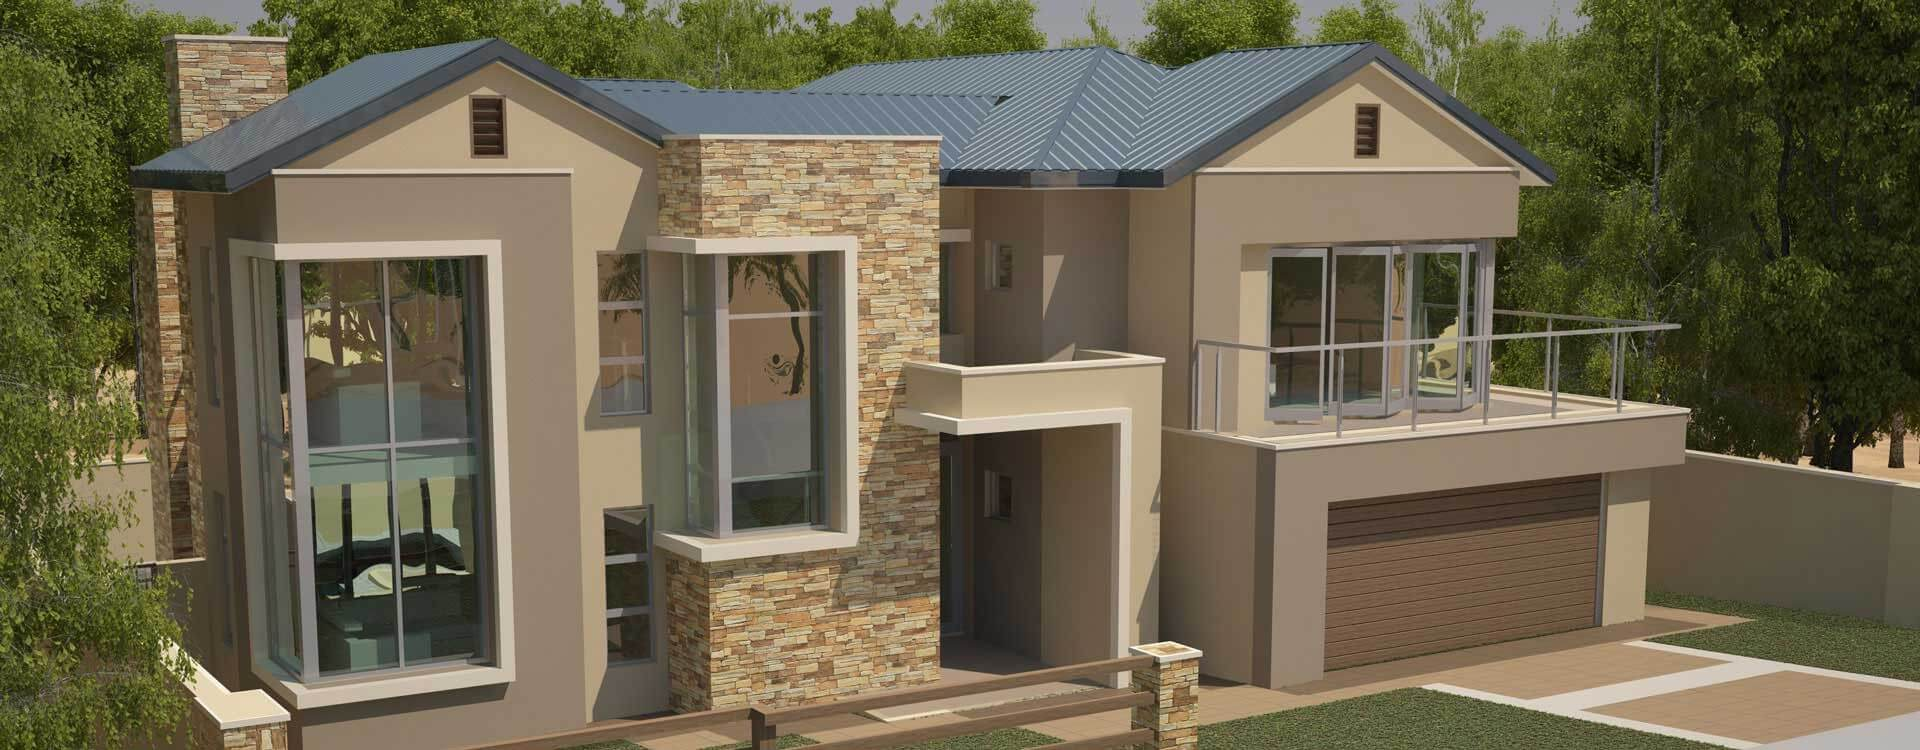 Nethouseplans   Affordable House Plansmodern contemporary style  house plans  bedroom  double storey floor plans  modern